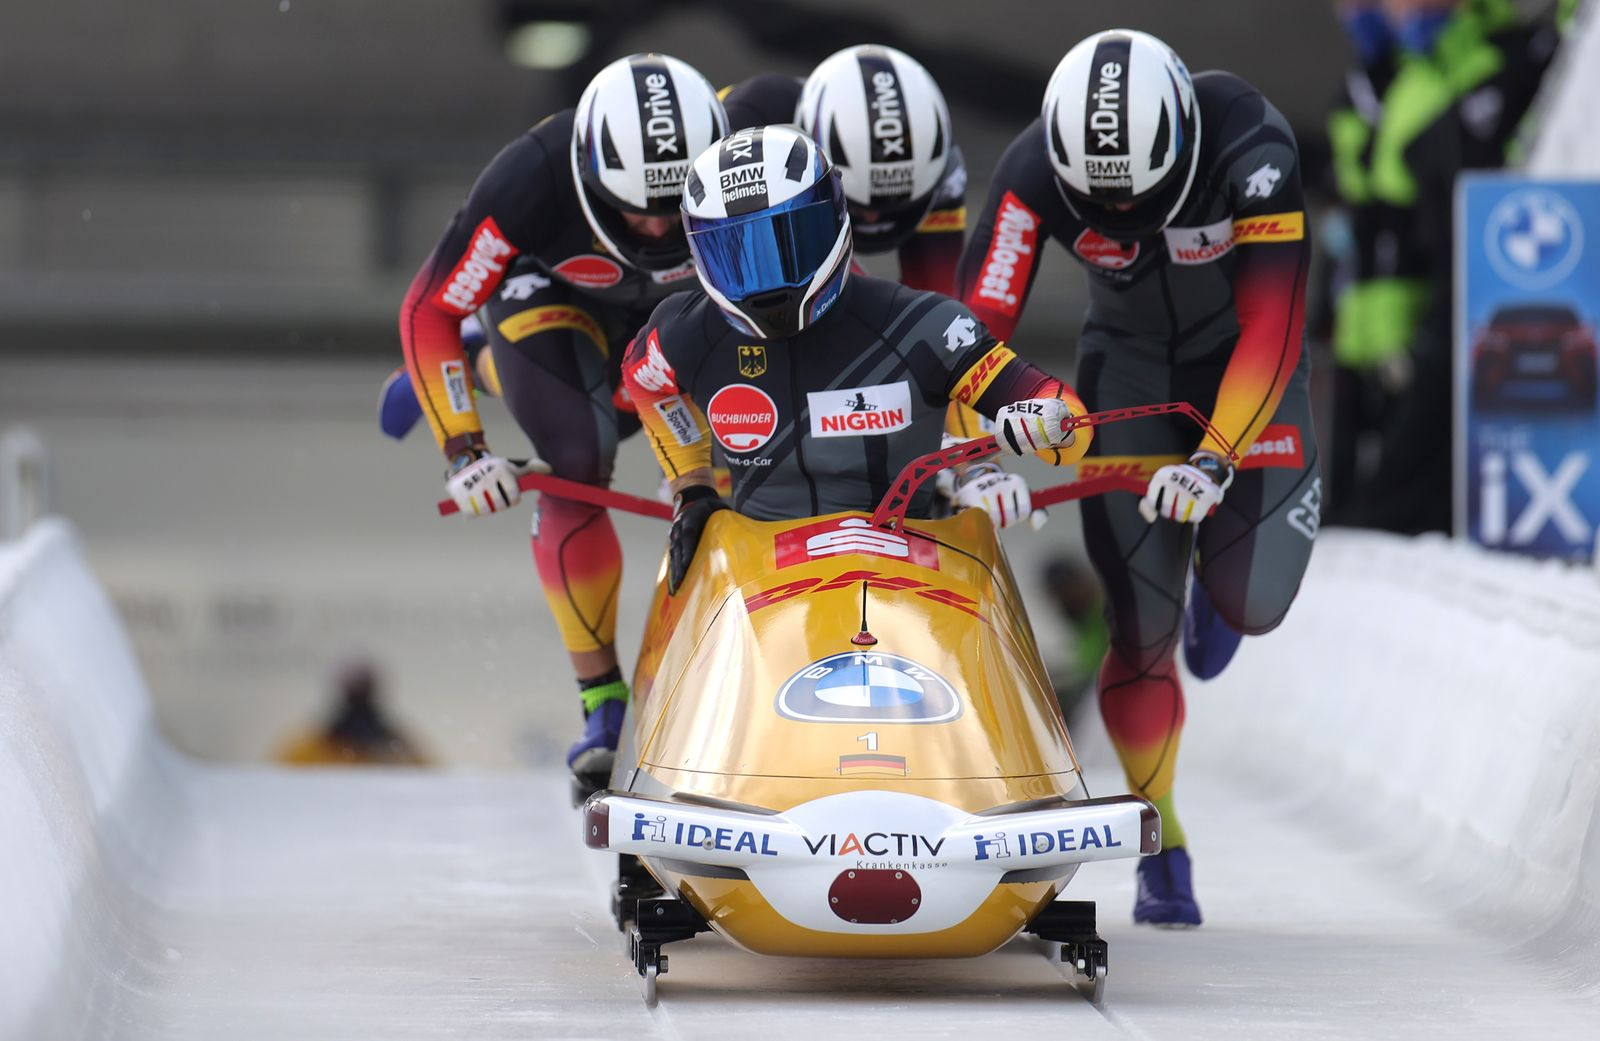 Bobsleigh and Skeleton World Cup, Winterberg, Germany - 10 Jan 2021